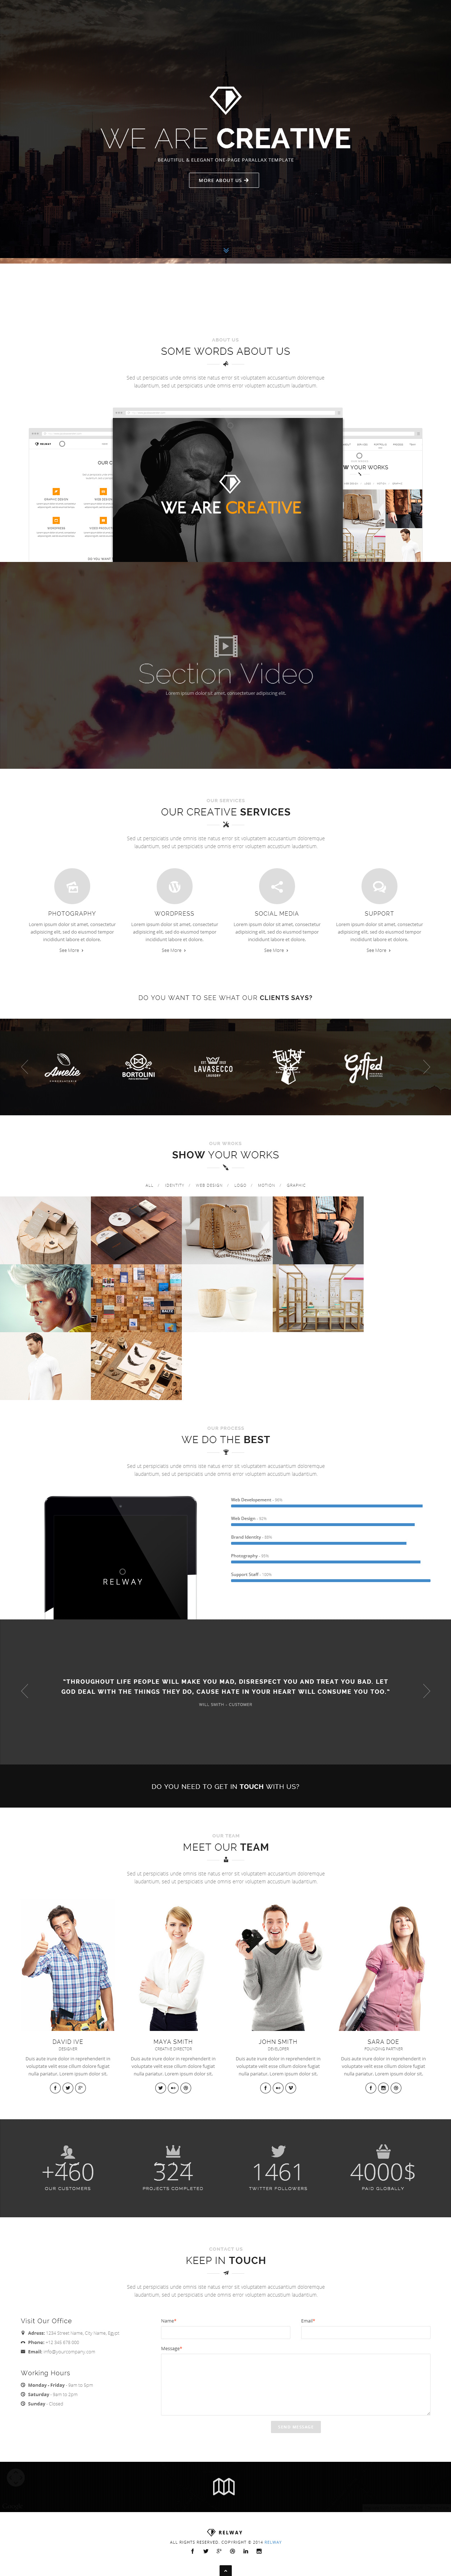 Website Layout Template Pin1Pdesign On Templates  Pinterest